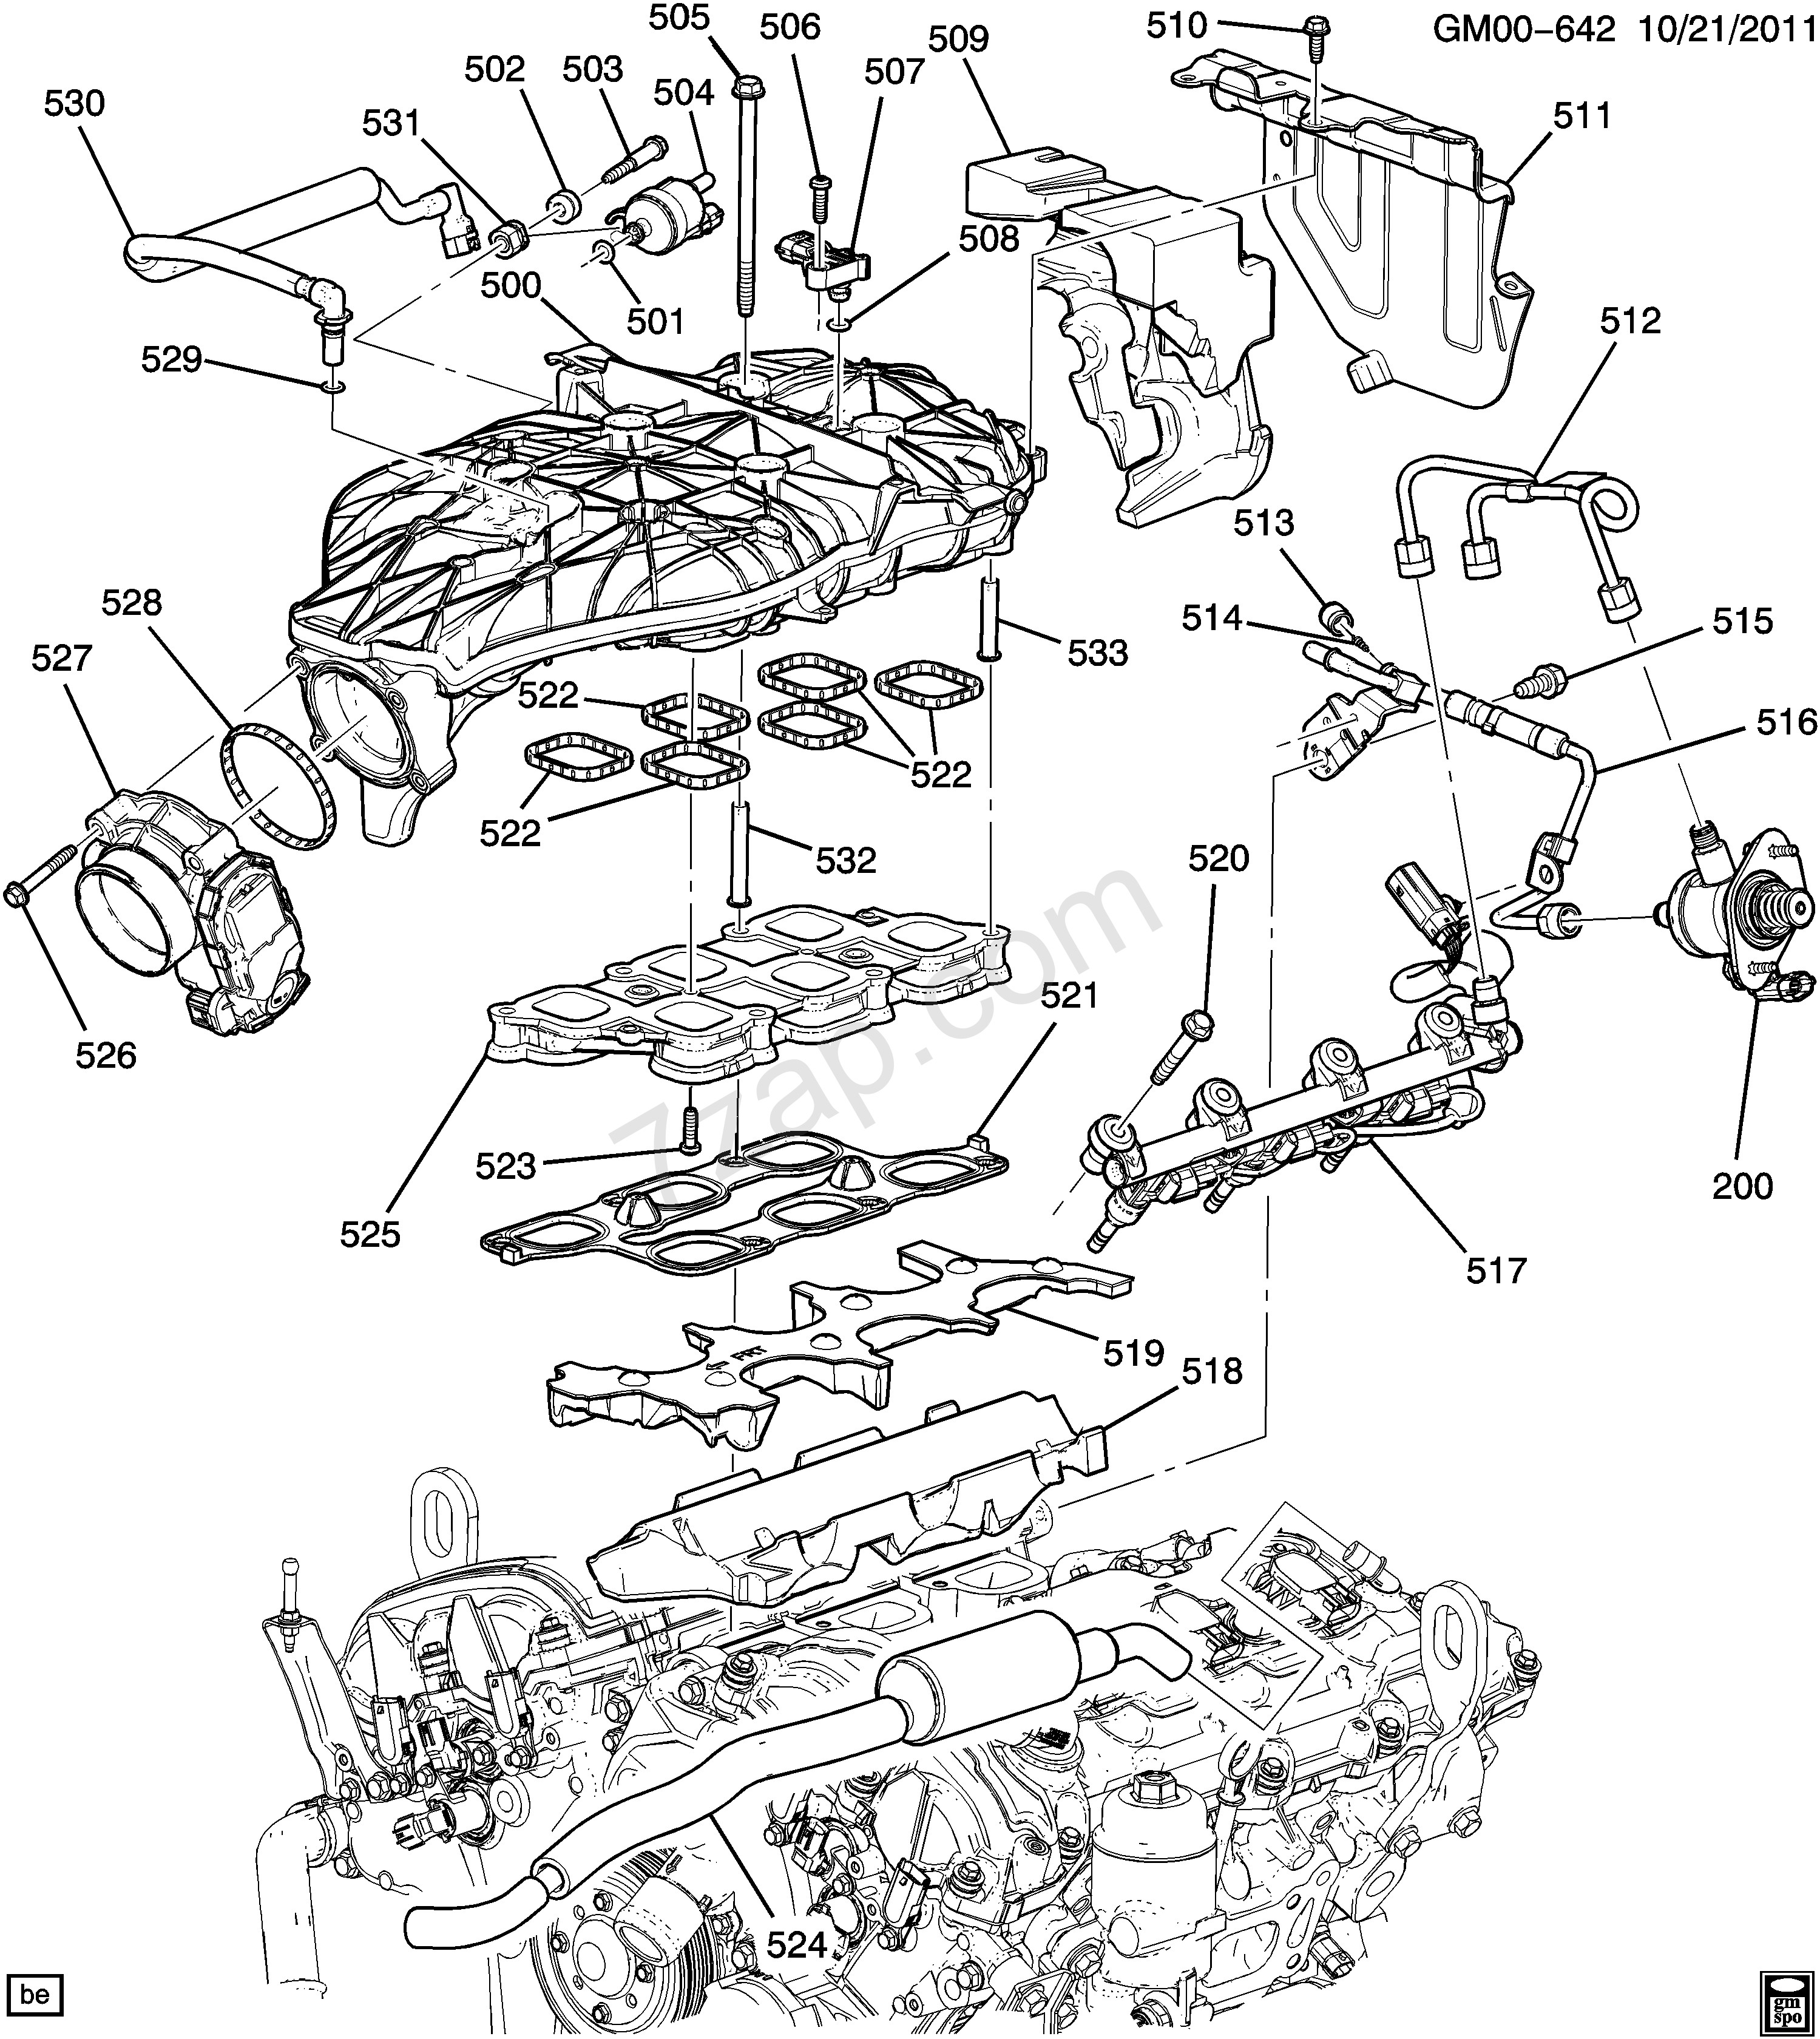 Subaru H6 3 0 Engine Diagram